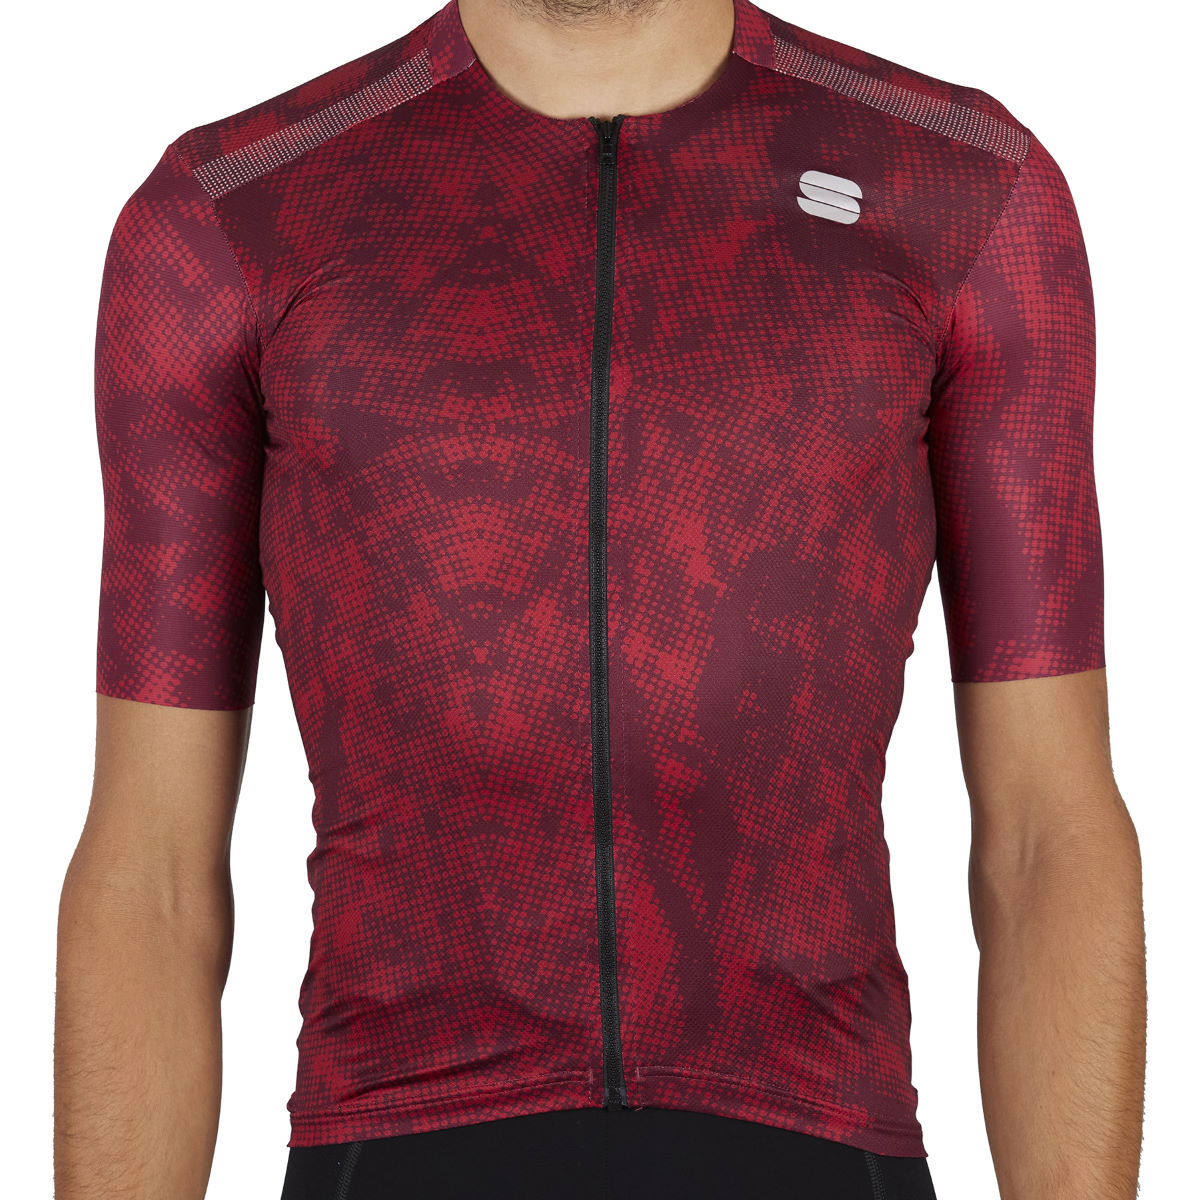 Sportful Escape Supergiara Cycling Jersey - M Red Wine  Jerseys